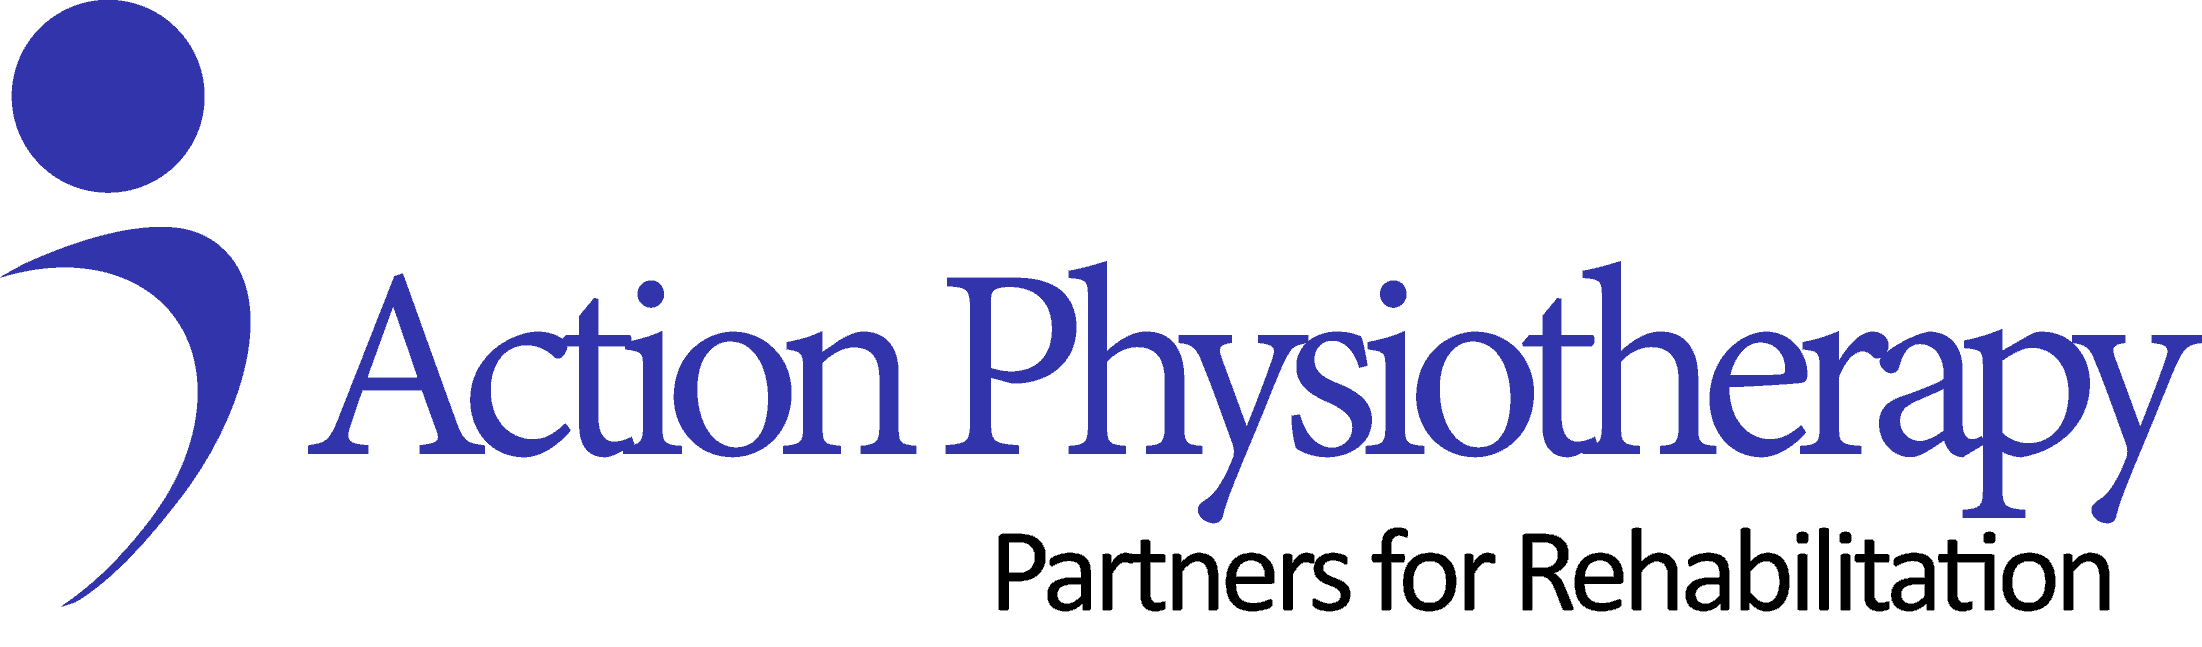 action physiotherapy logo